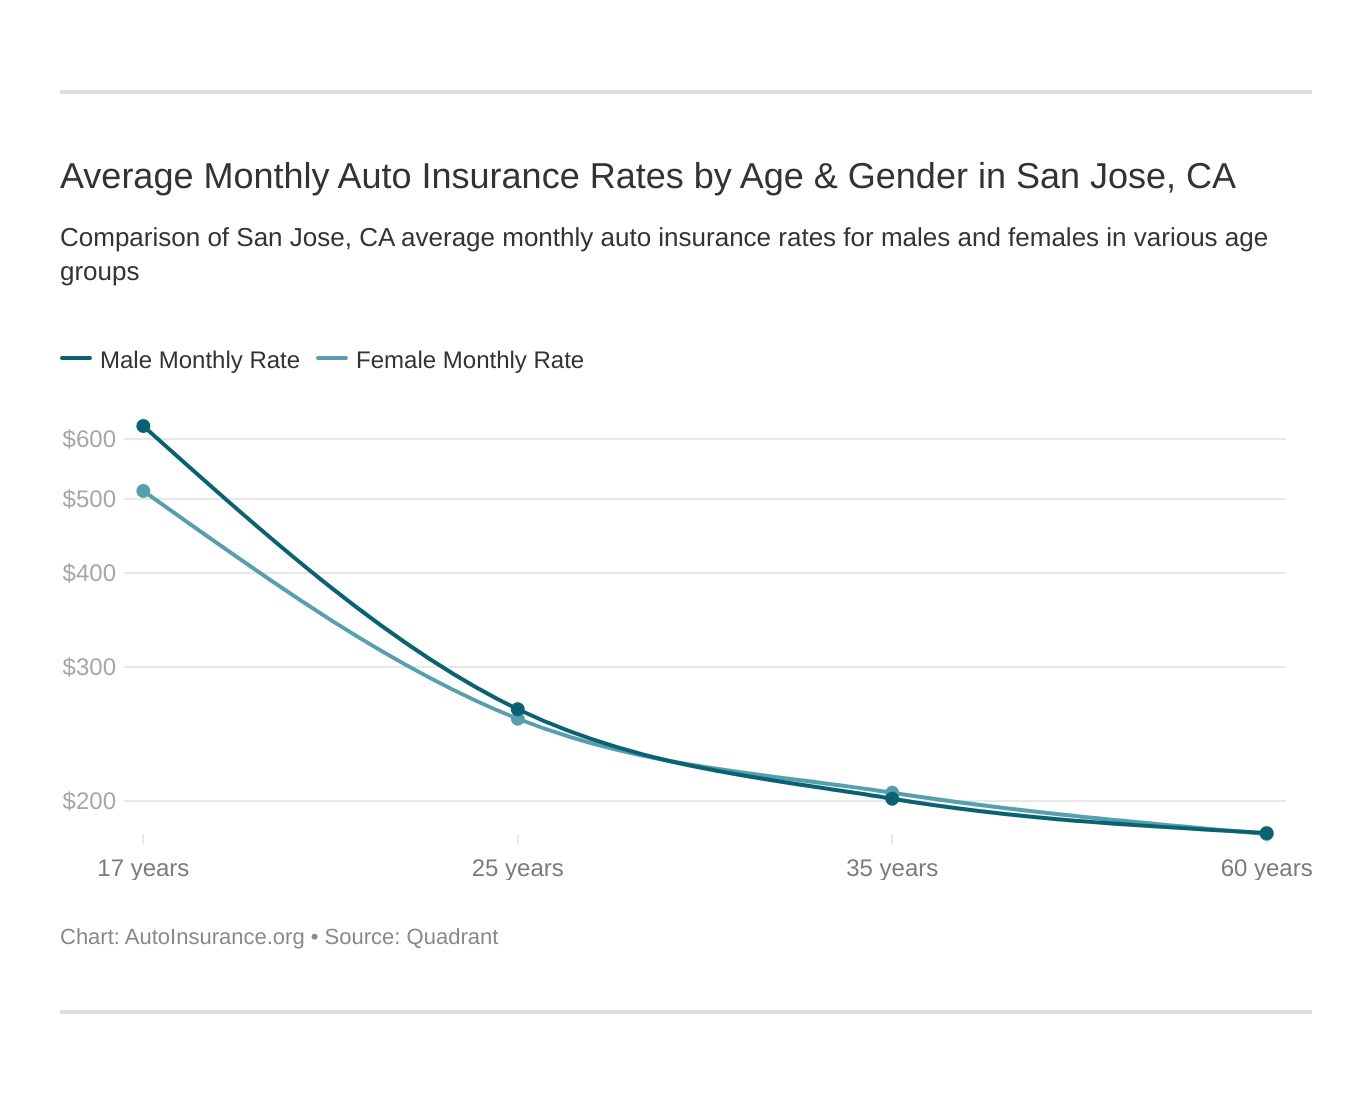 Average Monthly Auto Insurance Rates by Age & Gender in San Jose, CA